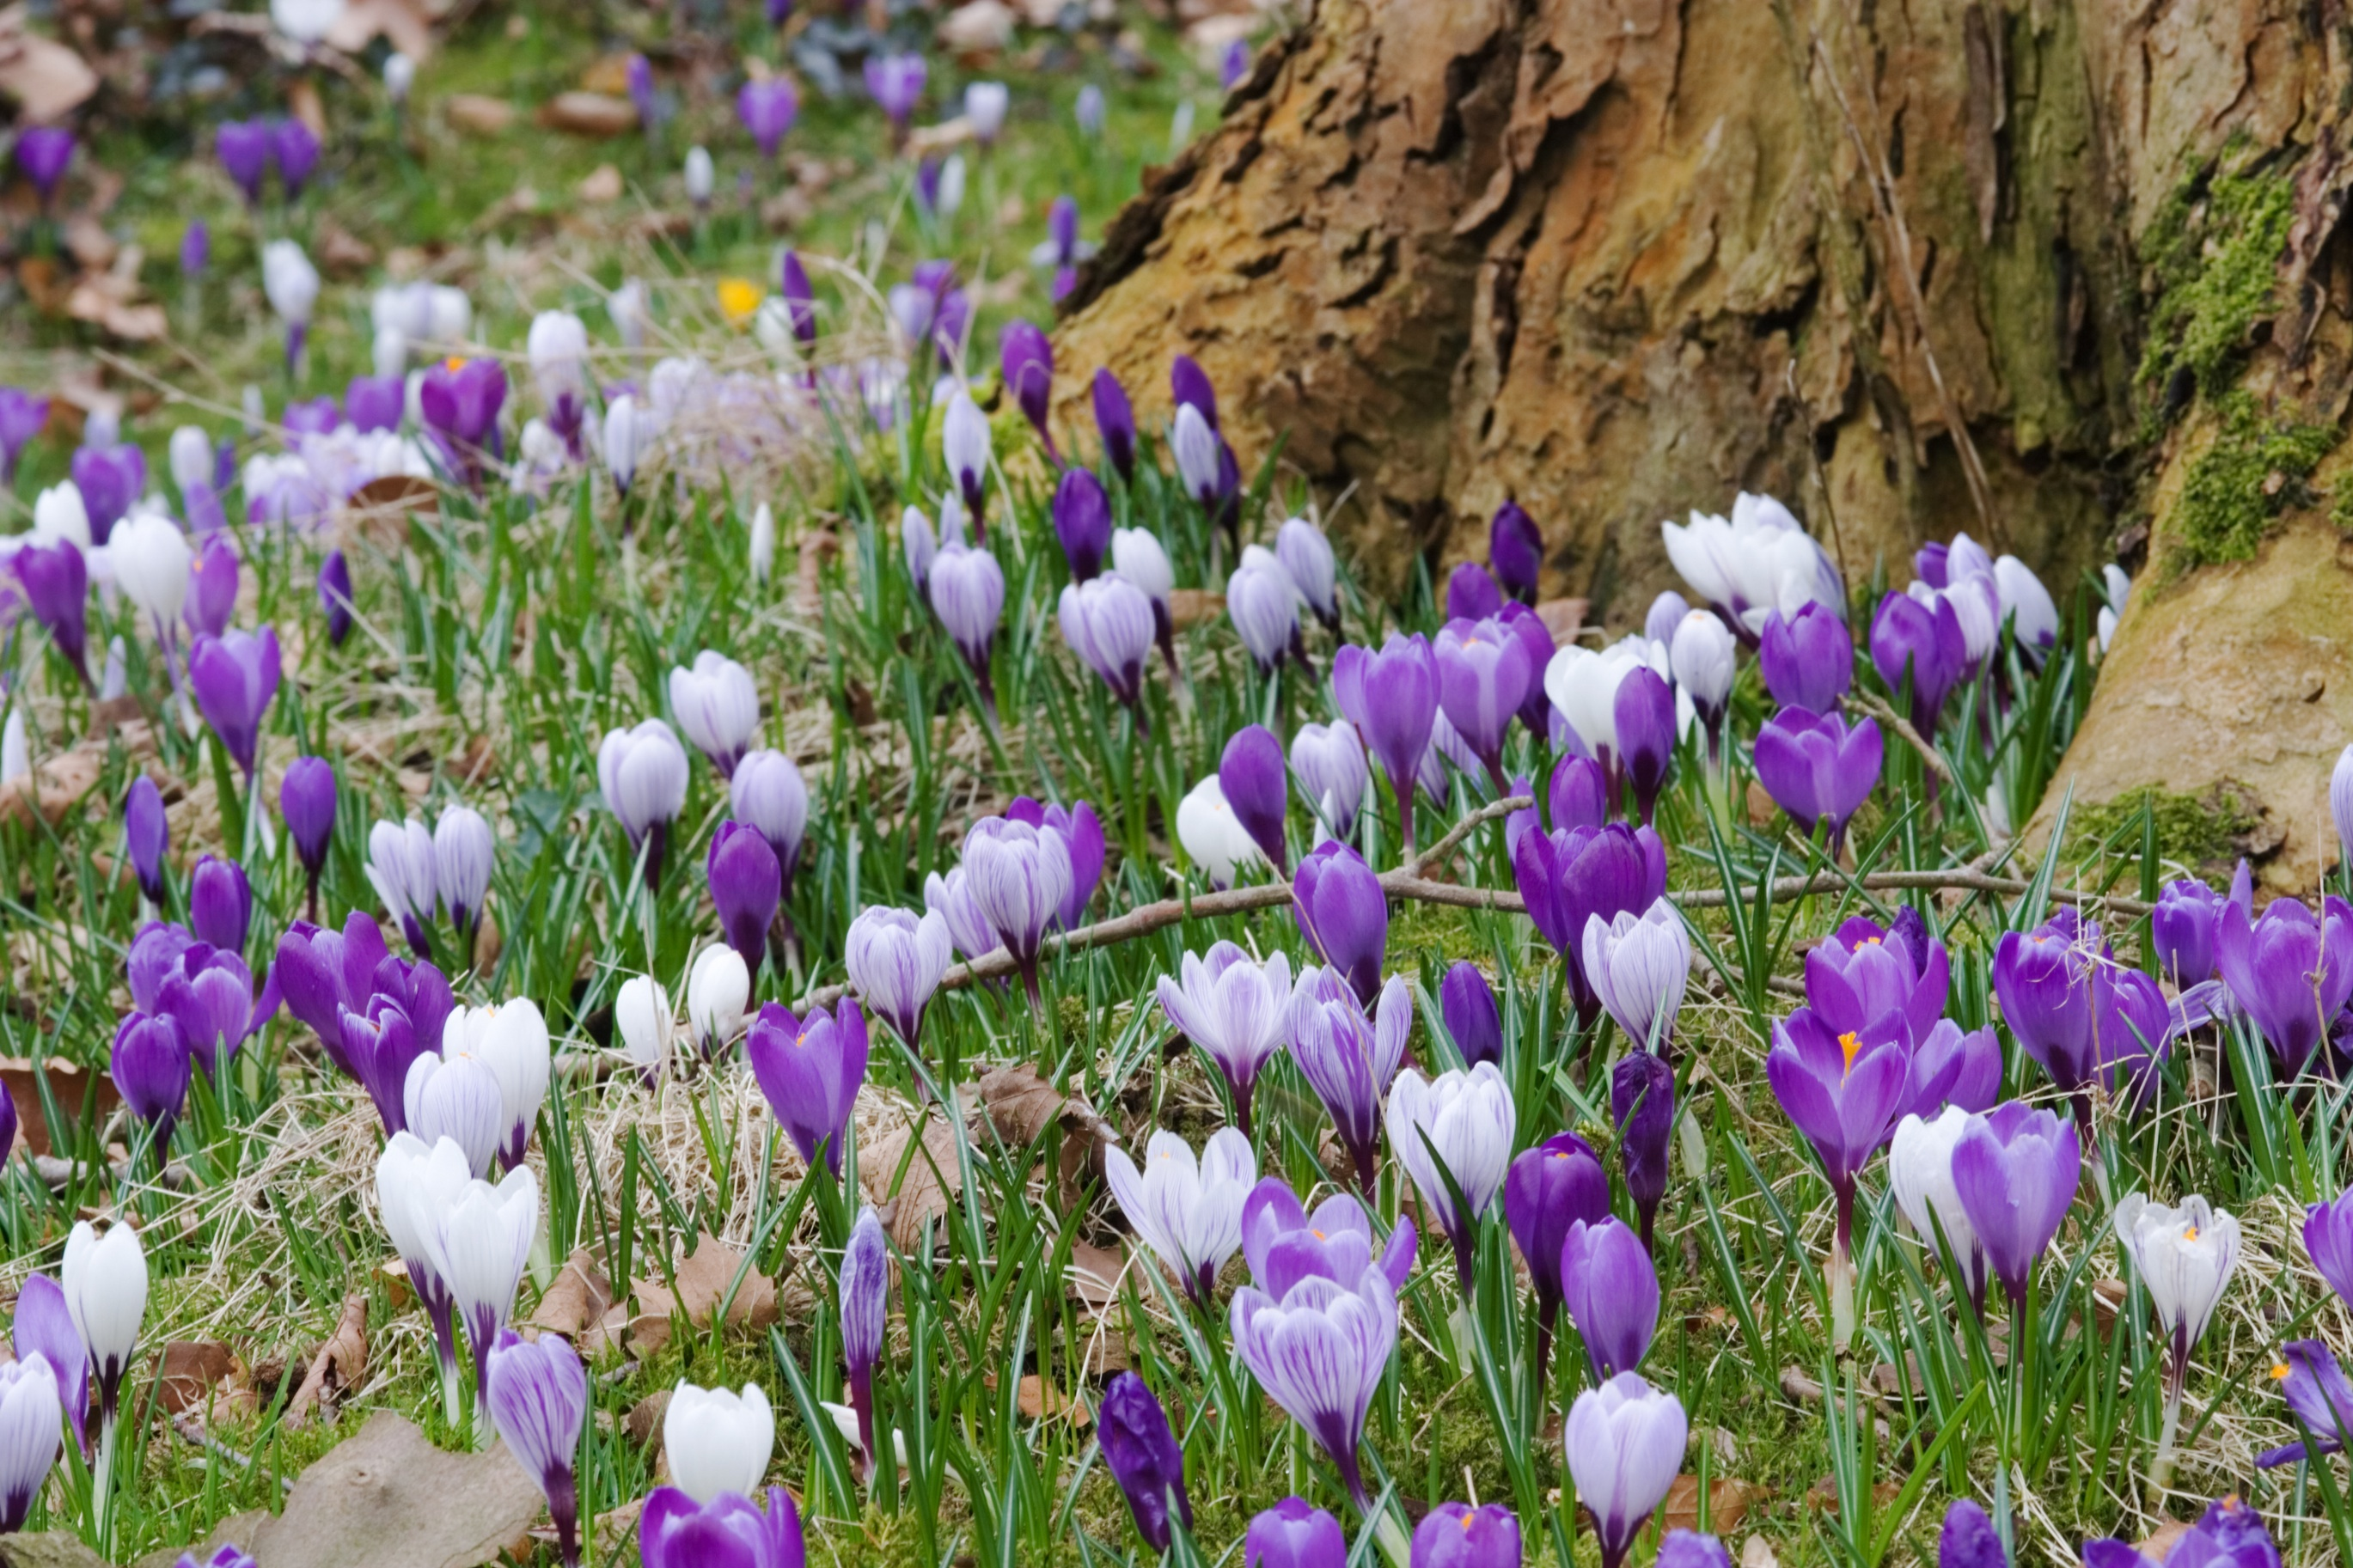 how to keep squirrels away from crocus bulbs